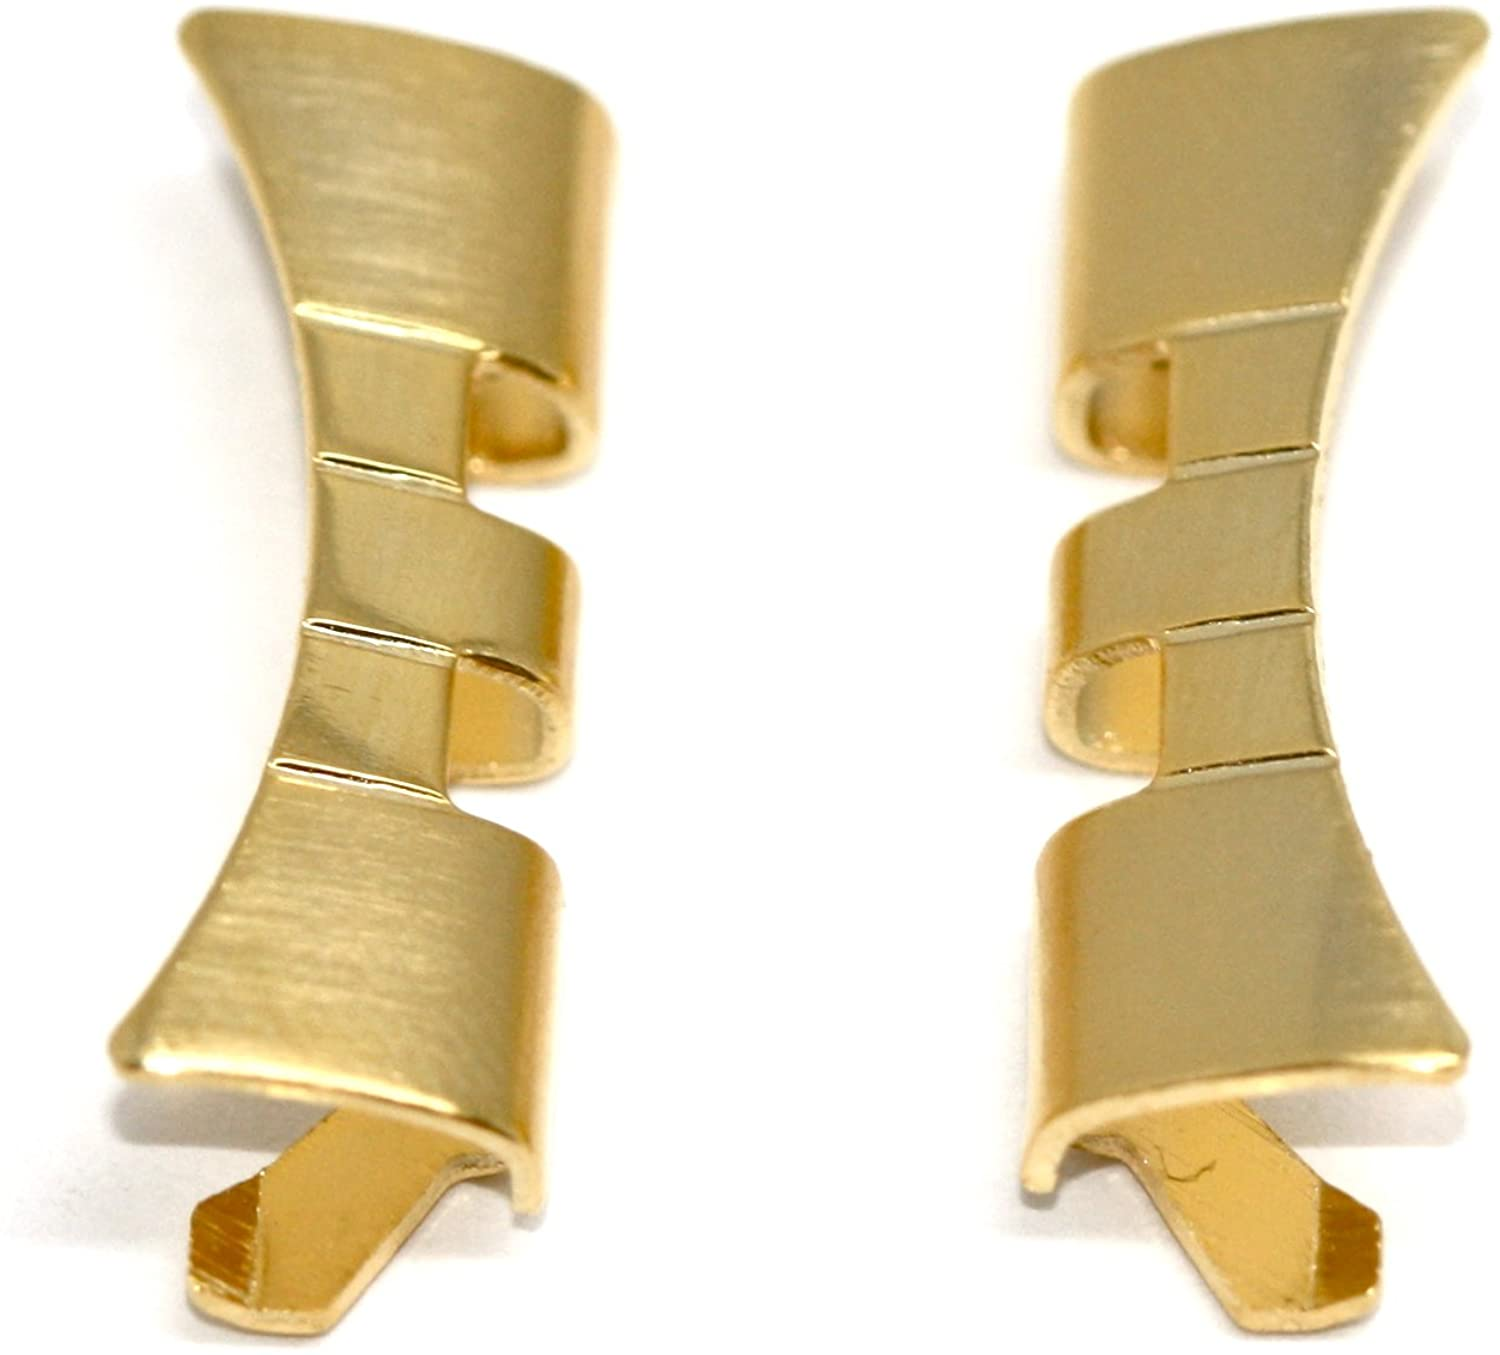 20MM Gold Stainless Steel Curved Watch Band Link Ends FITS Jubilee - 2PC